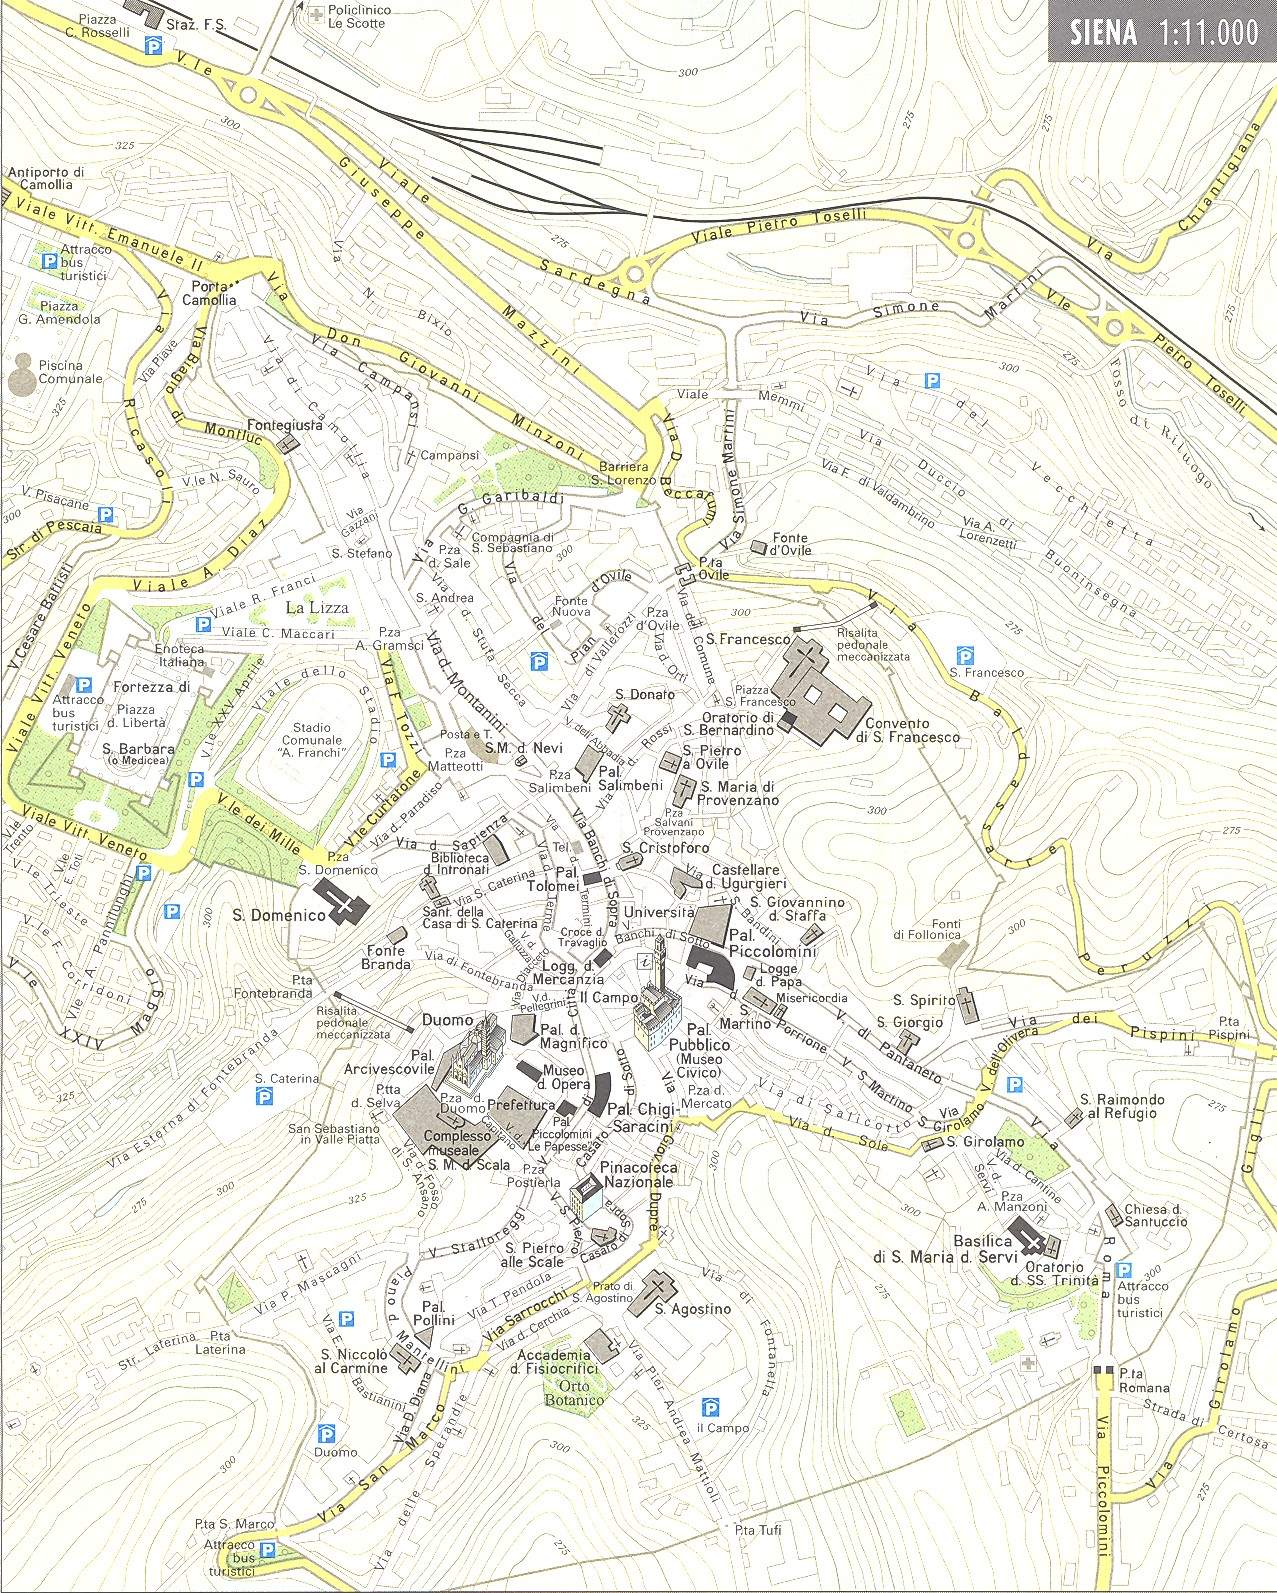 Large Siena Maps For Free Download And Print HighResolution And - Map od